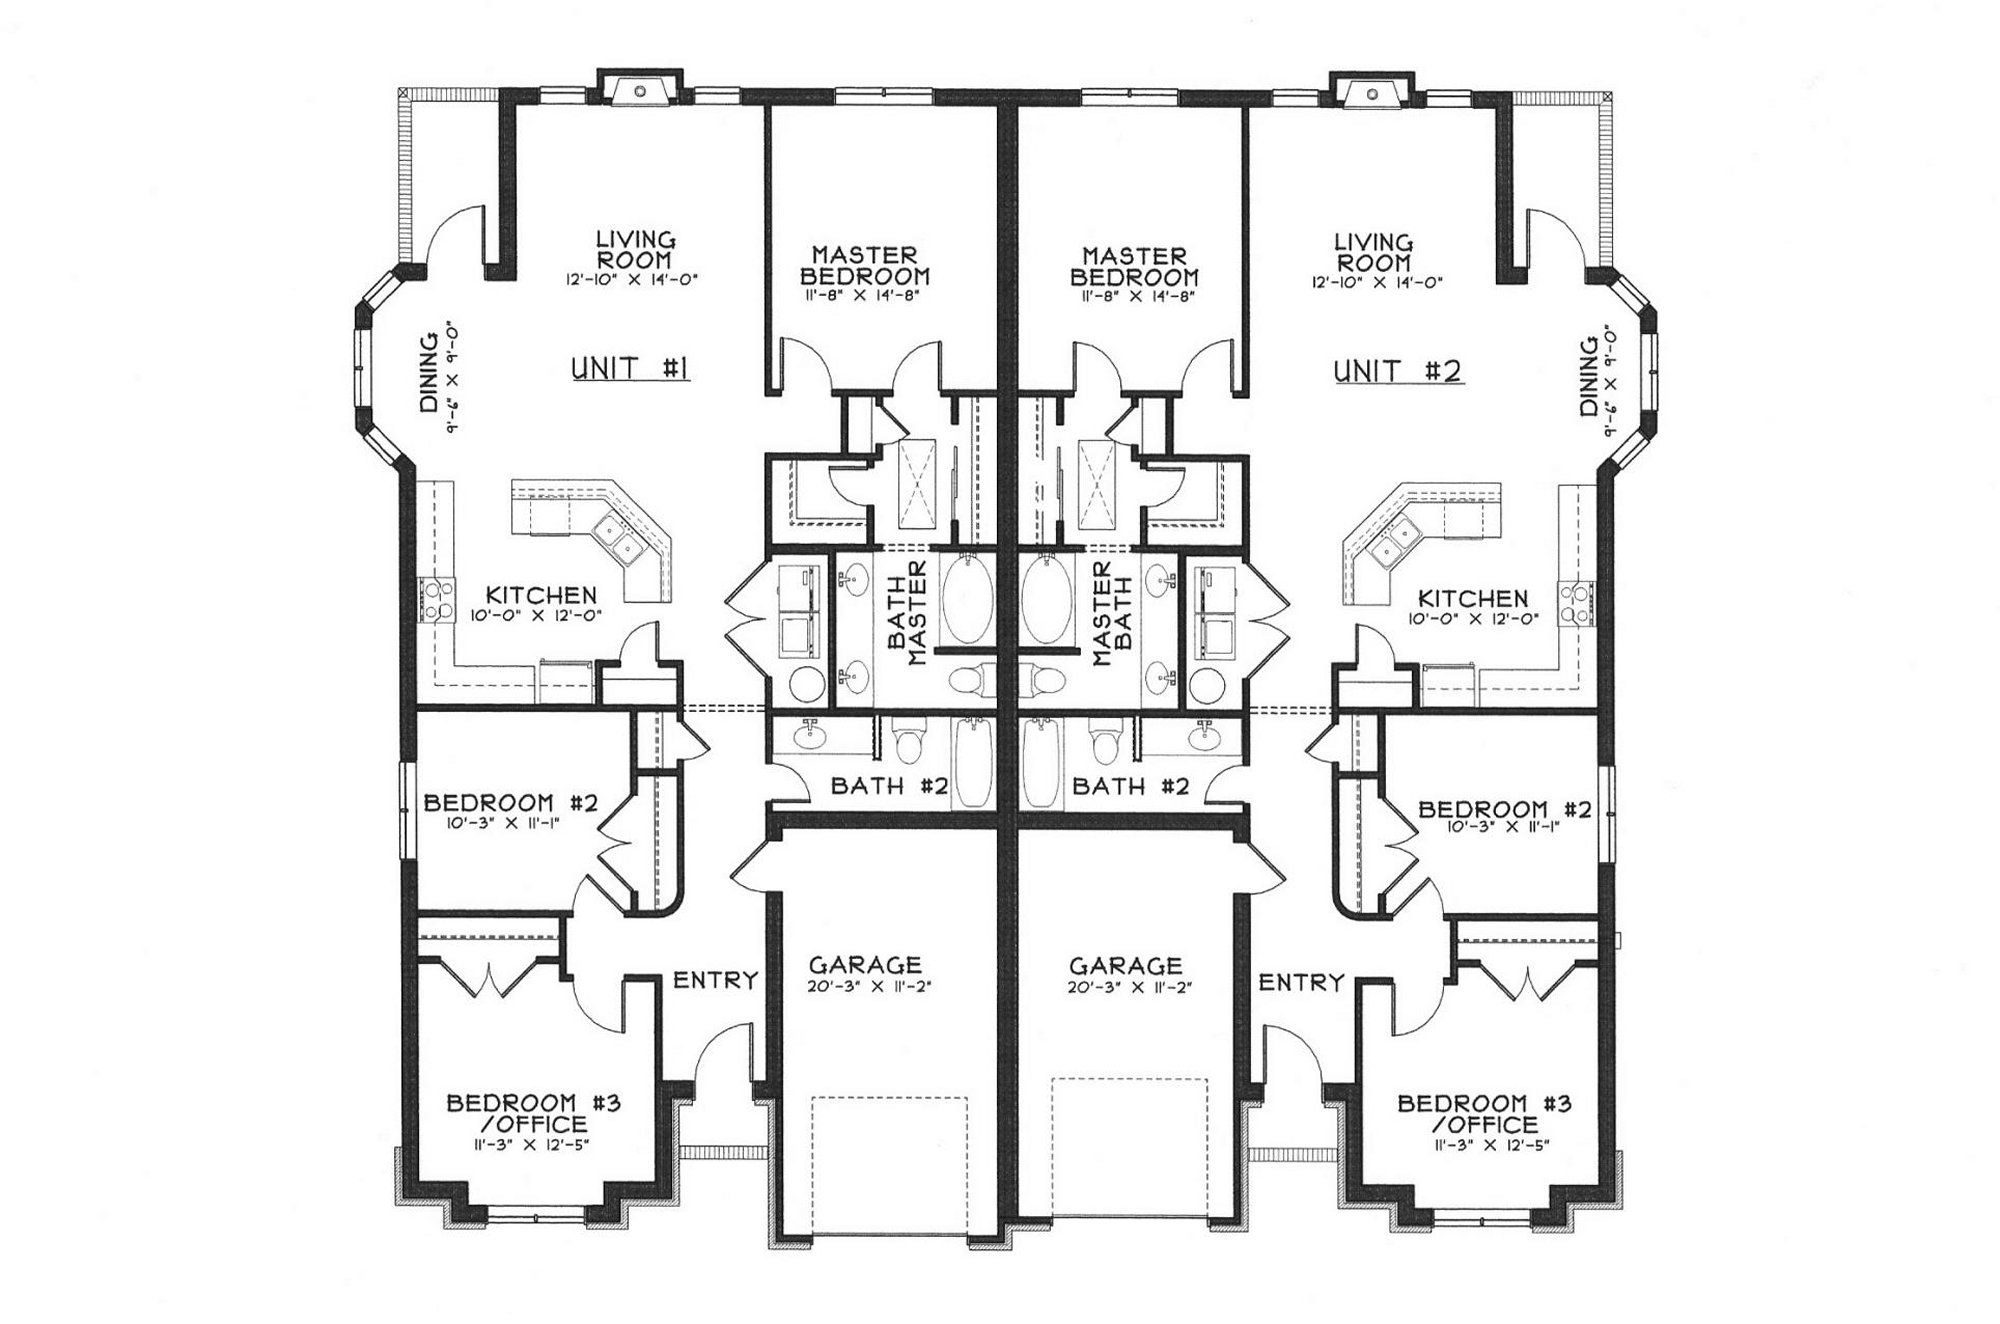 duplex house plans free download modern designs floor cubtab duplex house plans free download modern designs floor cubtab